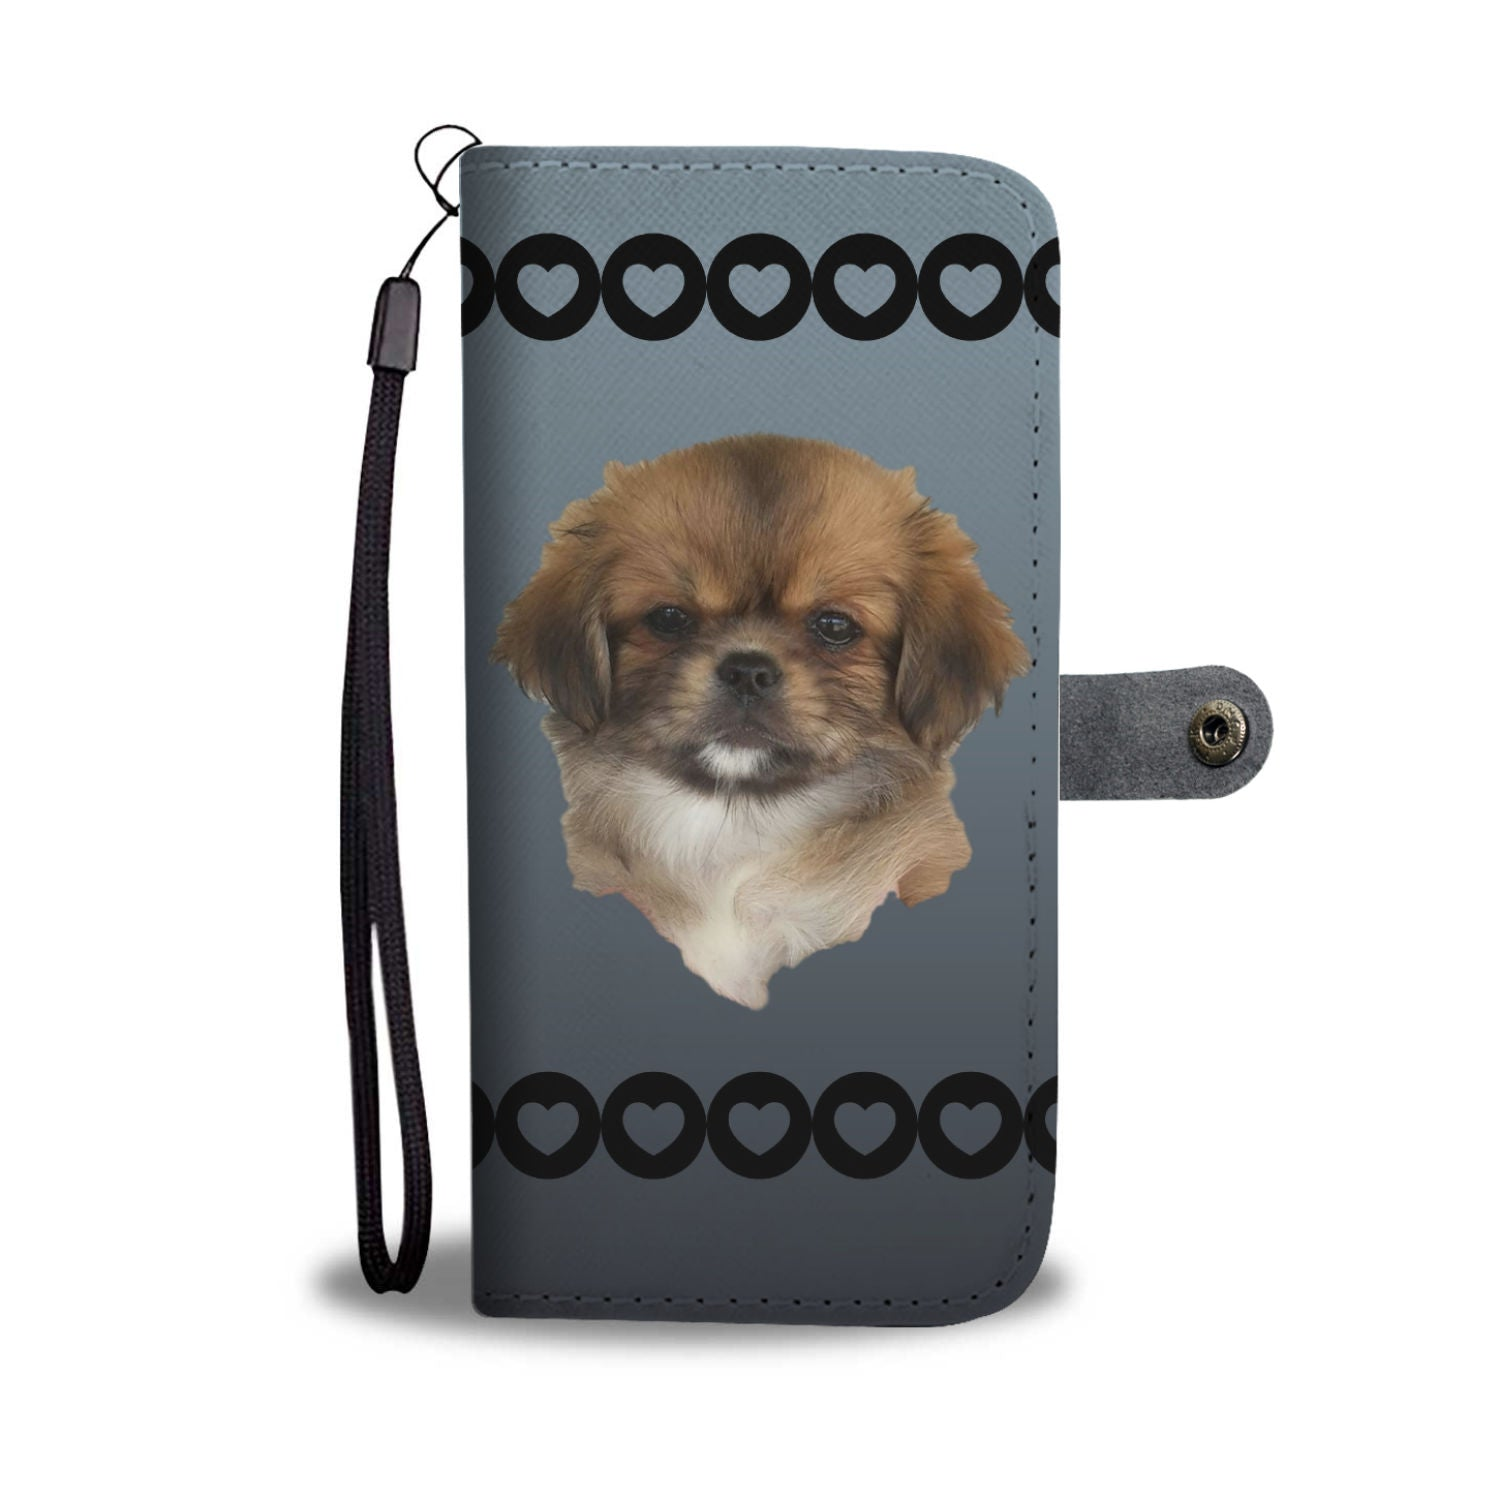 Tibetan Spaniel Puppy Phone Case Wallet